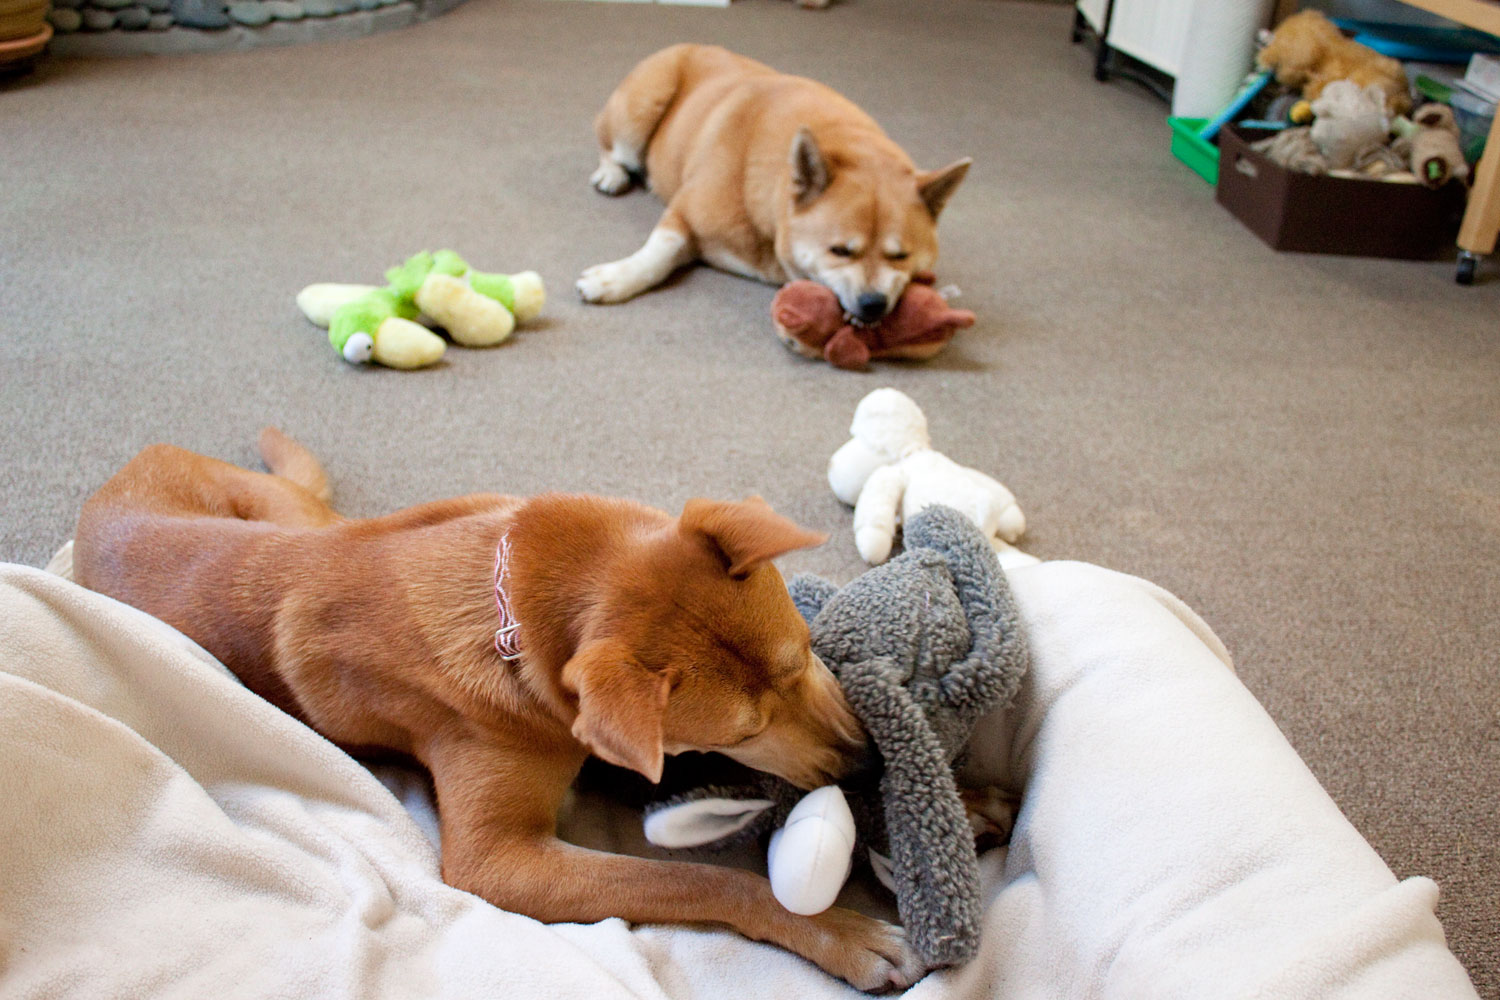 Zoe 'n Me {a dog blog} Slumber party | Jordan benShea | Santa Barbara, California